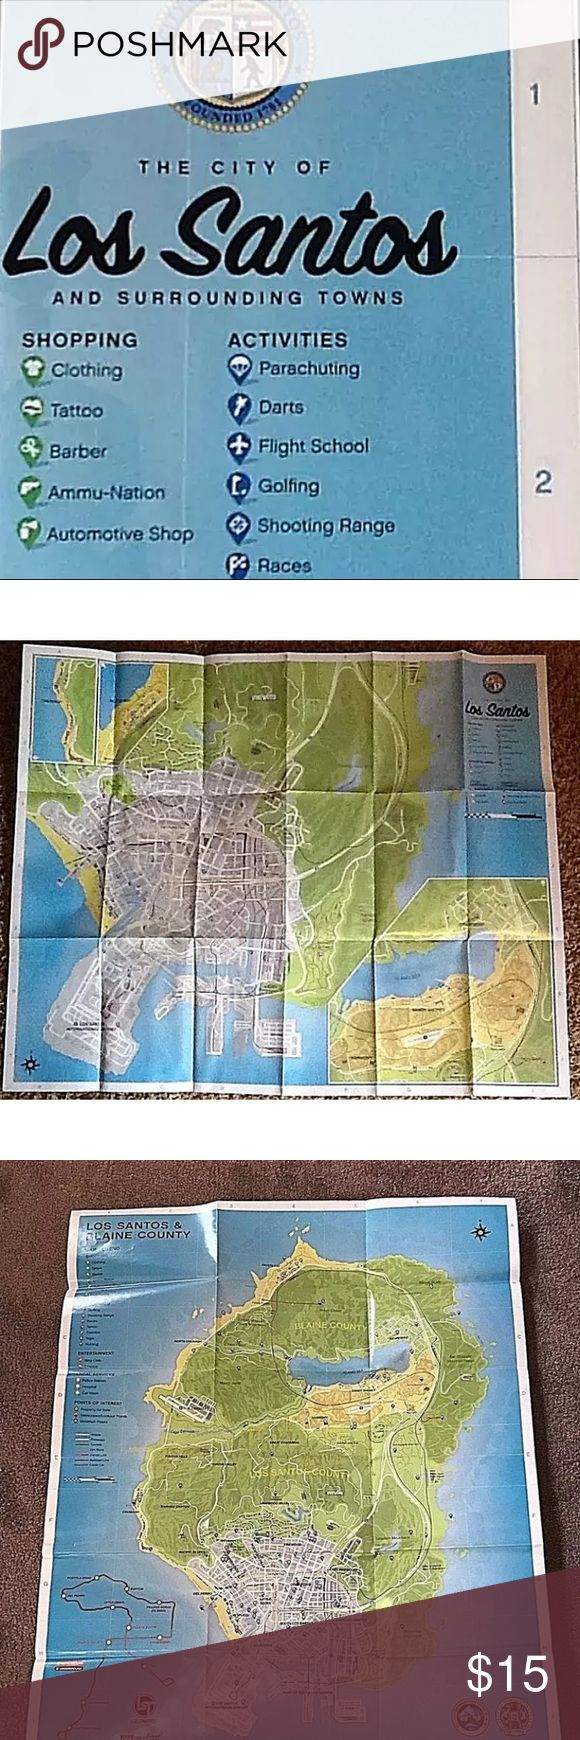 Selling this Xbox 360, PS4,PS3, Xbox One GRAND THEFT AUTO MAP on Poshmark! My username is: queenofresell. #shopmycloset #poshmark #fashion #shopping #style #forsale #Rockstar #Other